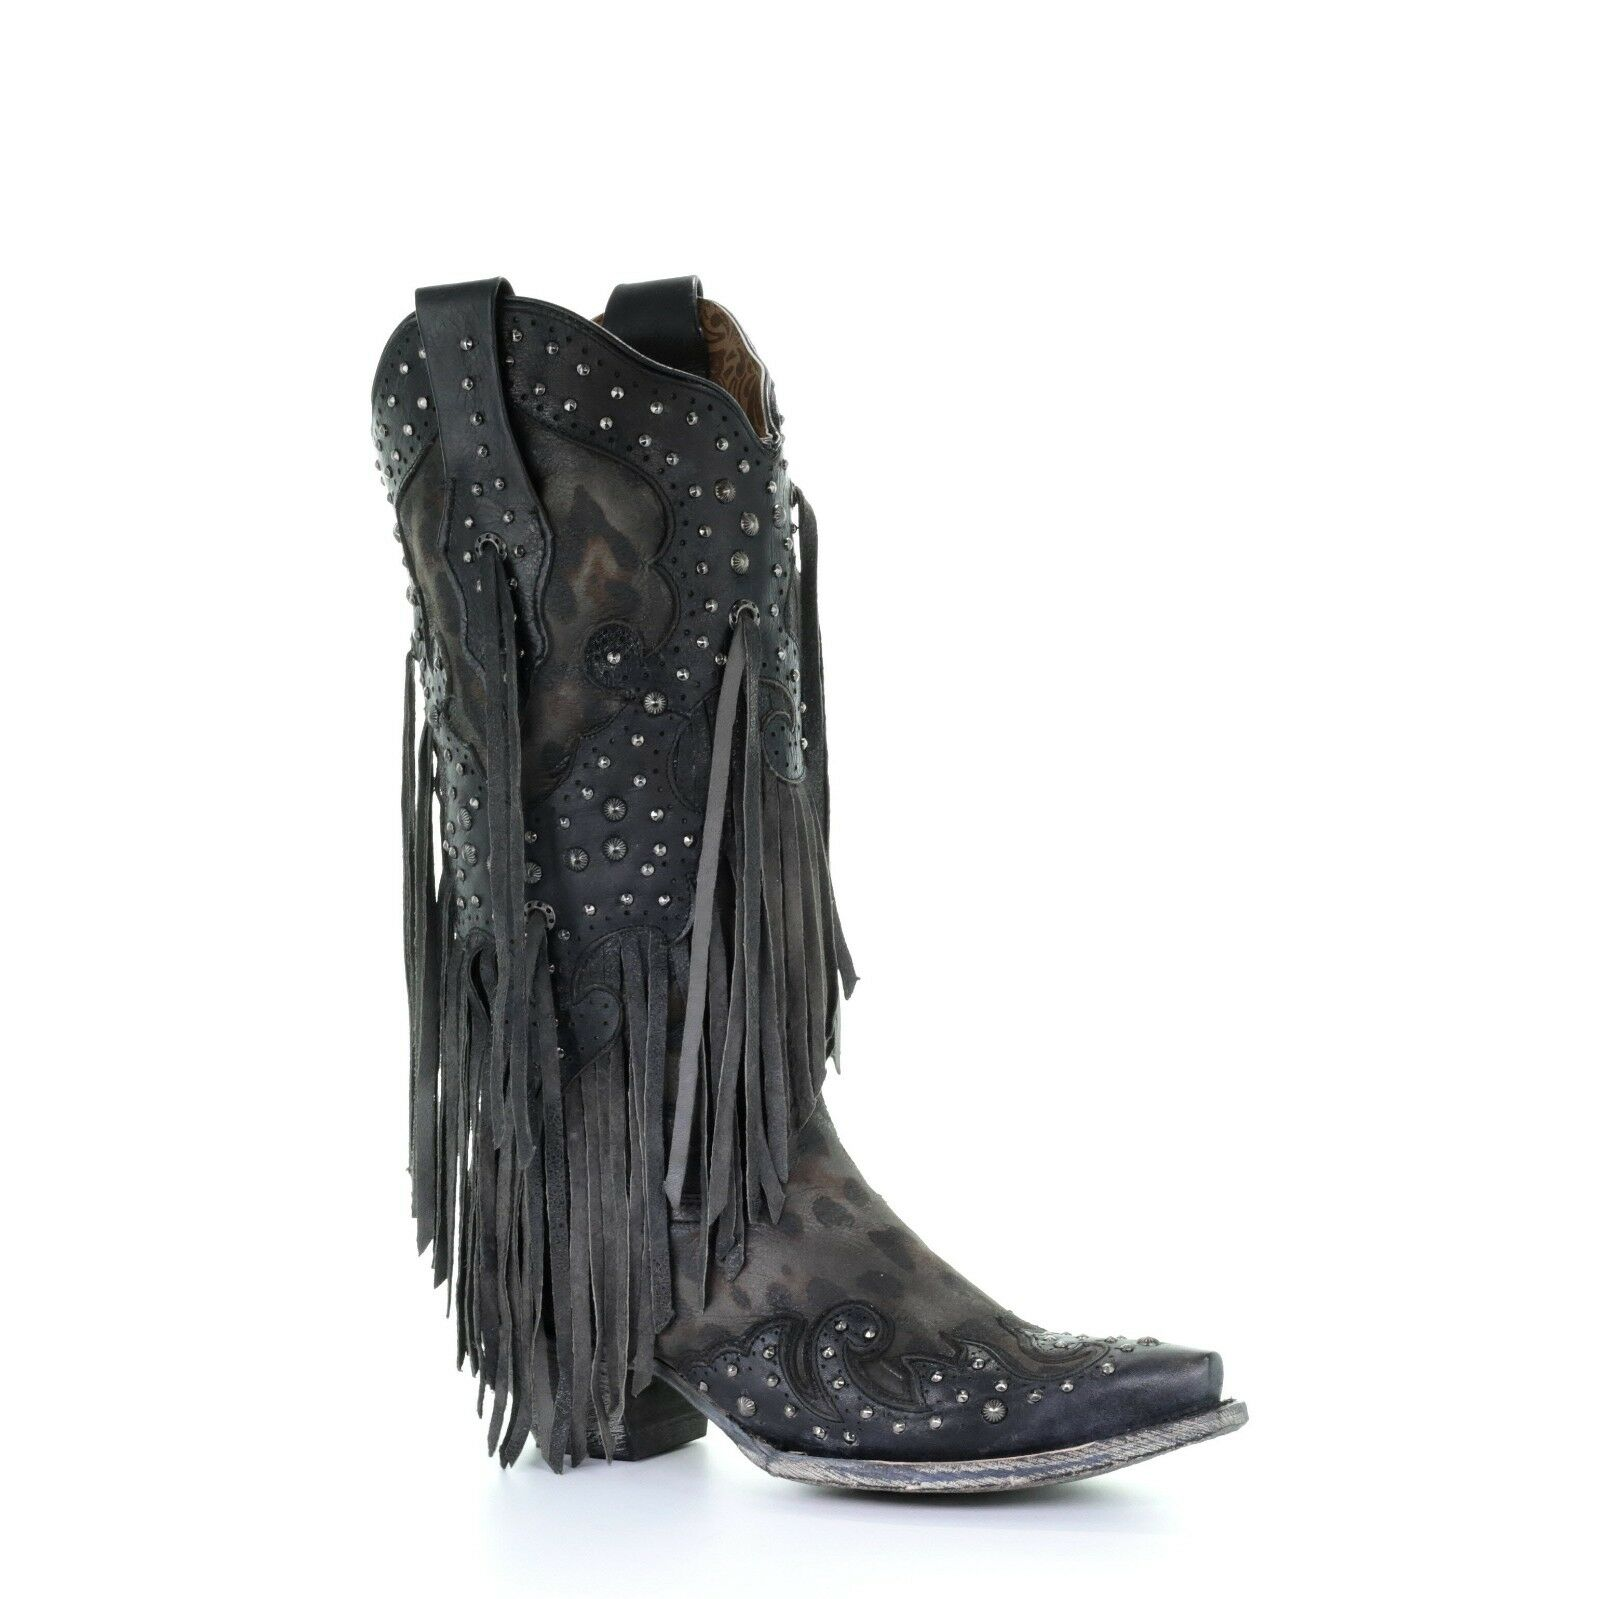 Corral Ladies Grey Goat Overlay Studs and Fringe Western Boots A3619